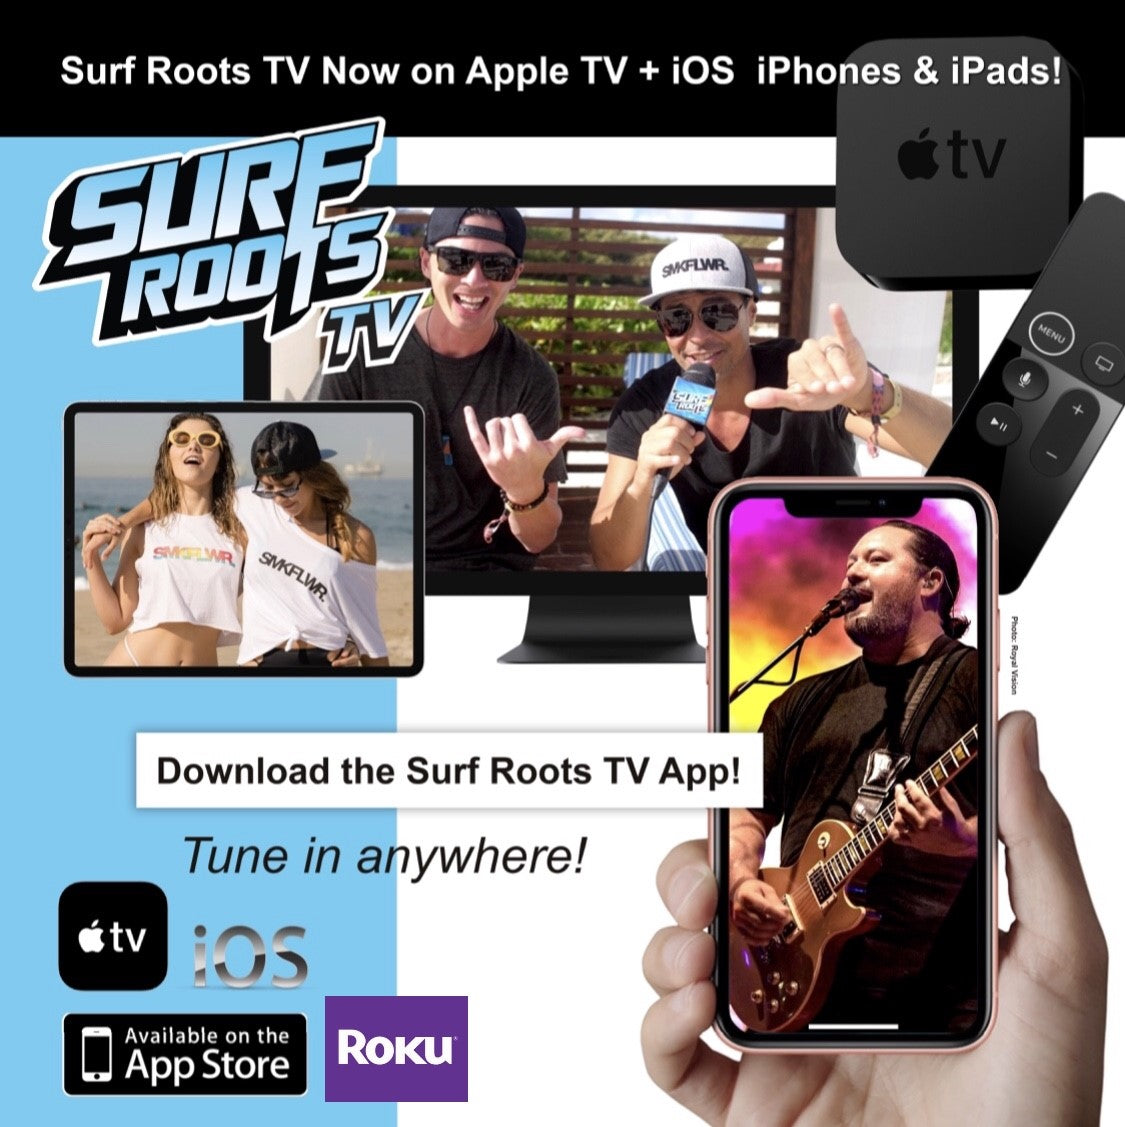 Surf Roots TV App now on iPhone & iPad!